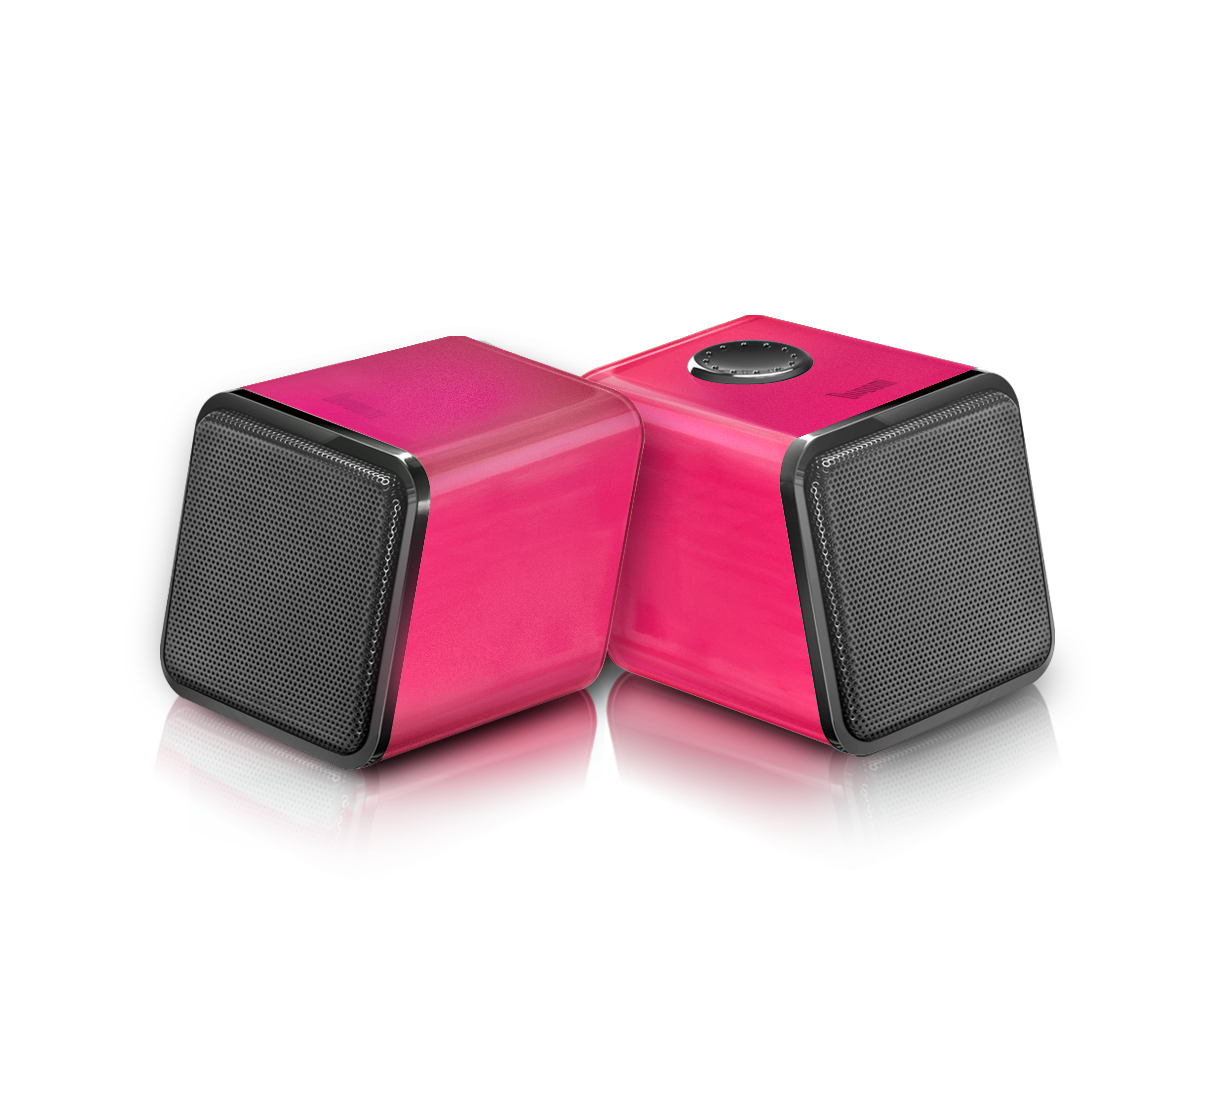 Wholesale laptop speaker : iris-02 pink stereo 2.0 usb speaker system-built-in latest digital amp